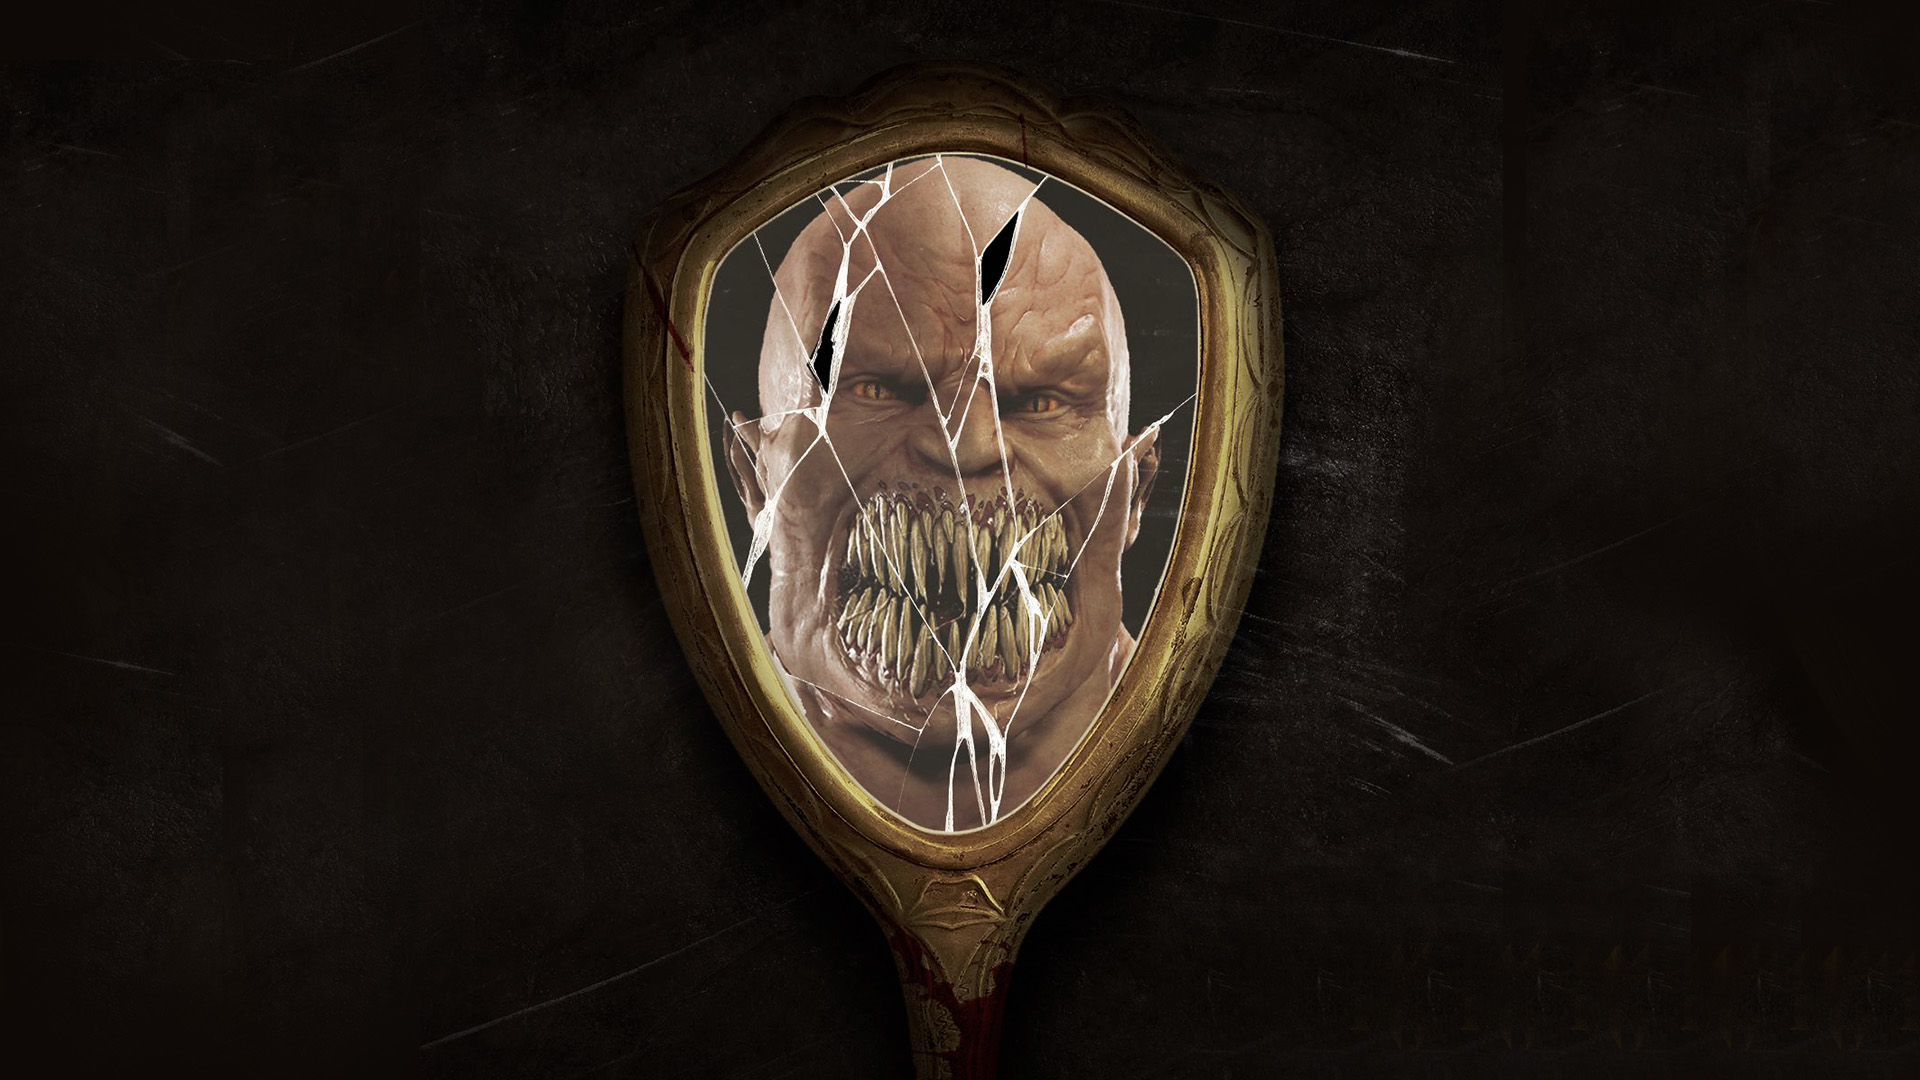 Baraka and the mirror background